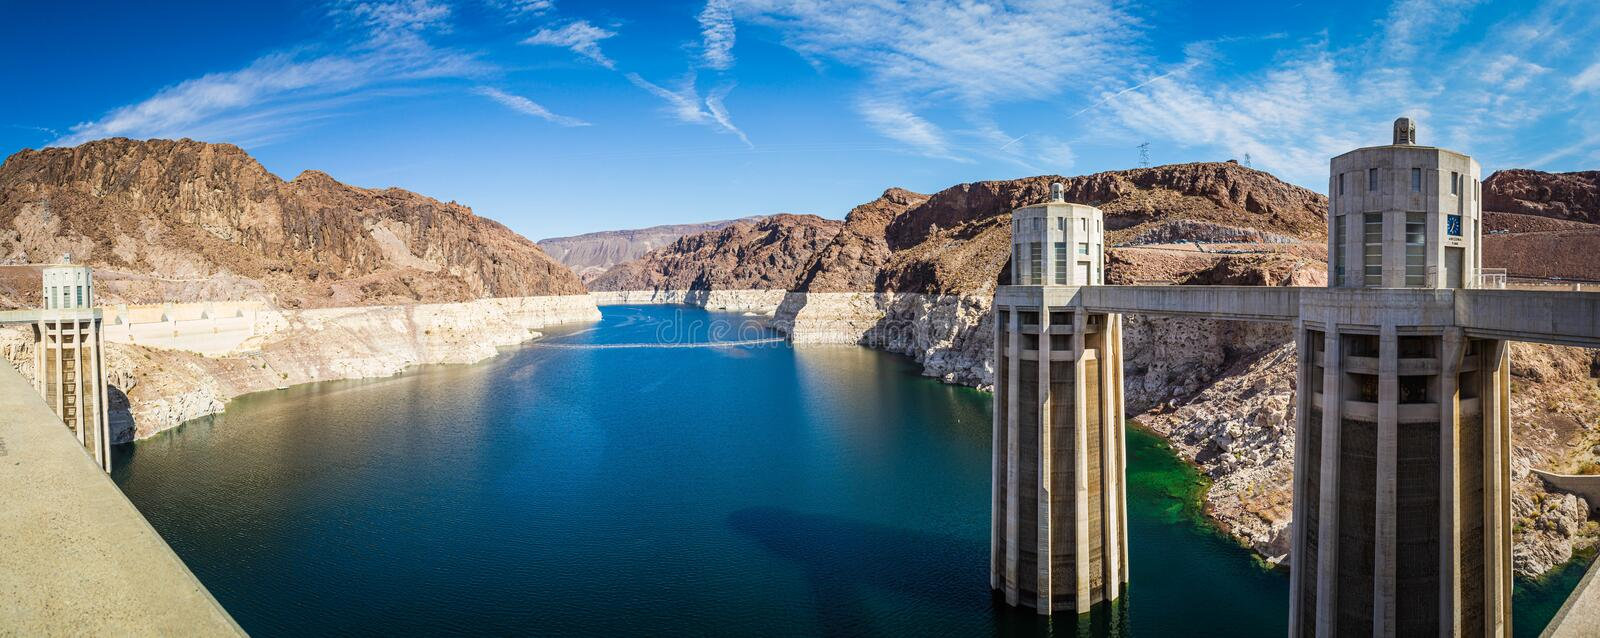 Panorama image Looking into Lake Meade from the Hoover dam. With the bleached high waterline of the dam stock photos